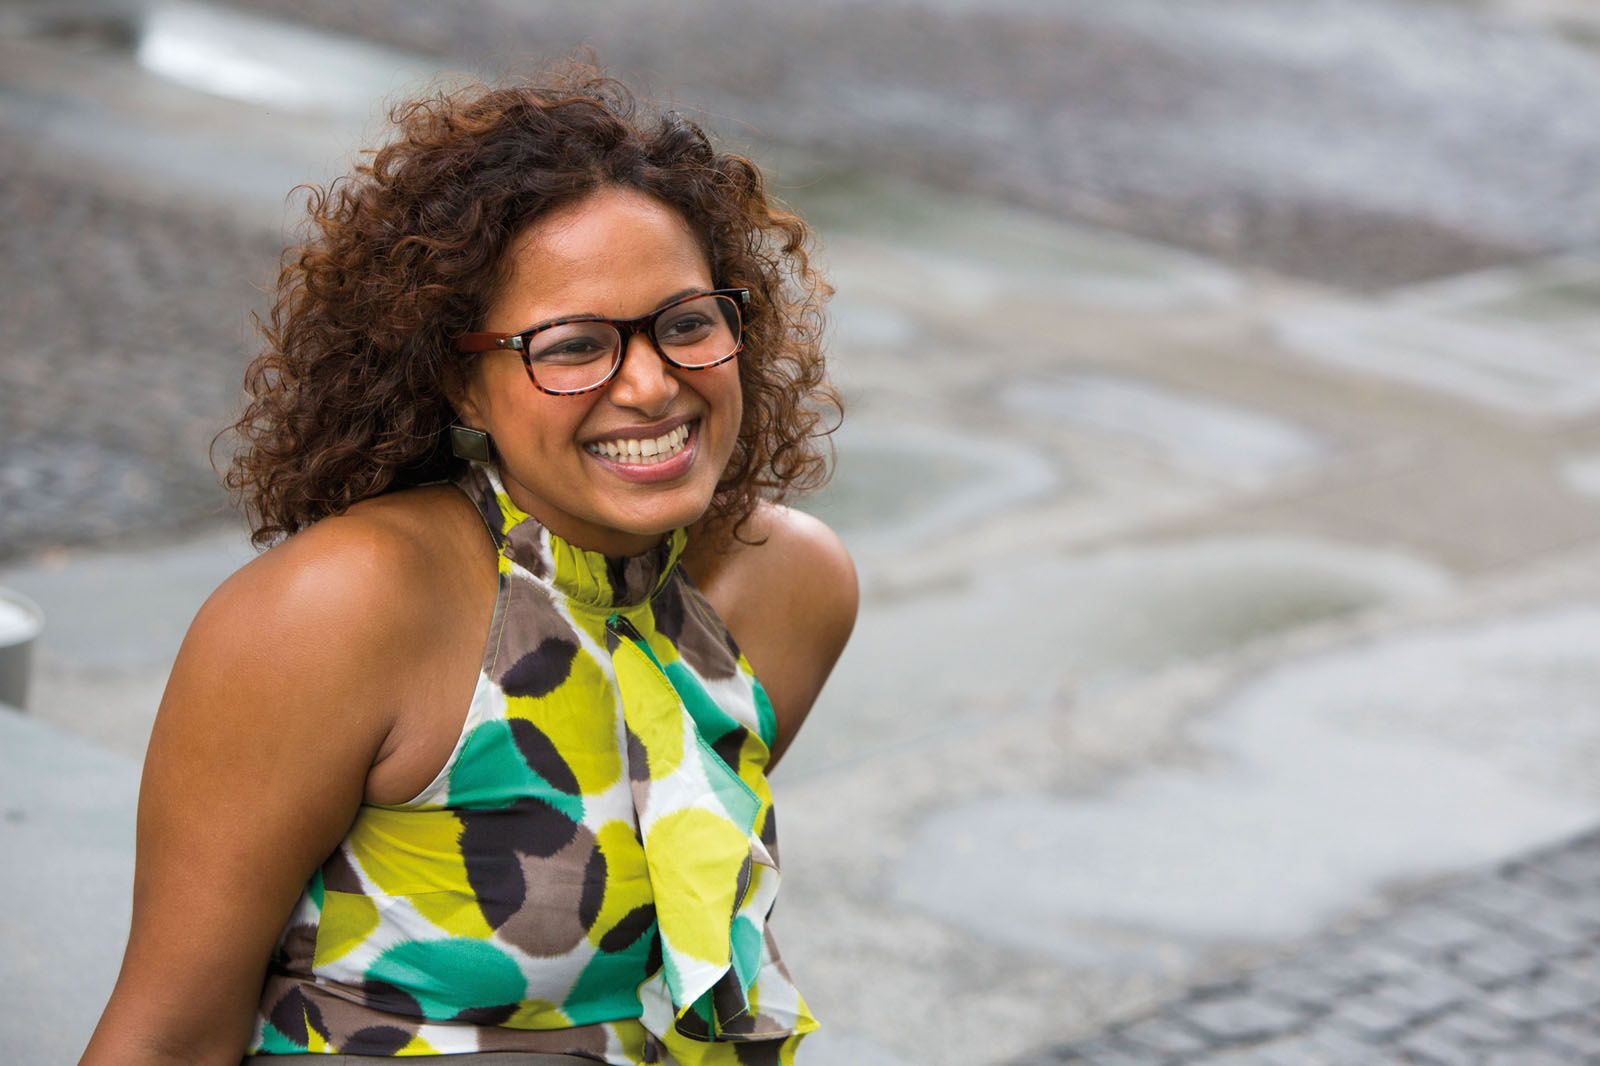 Ramya Ragupathi founded Oh My Goodness!, with a mission to make gluten-, dairy- and refined sugar-free food